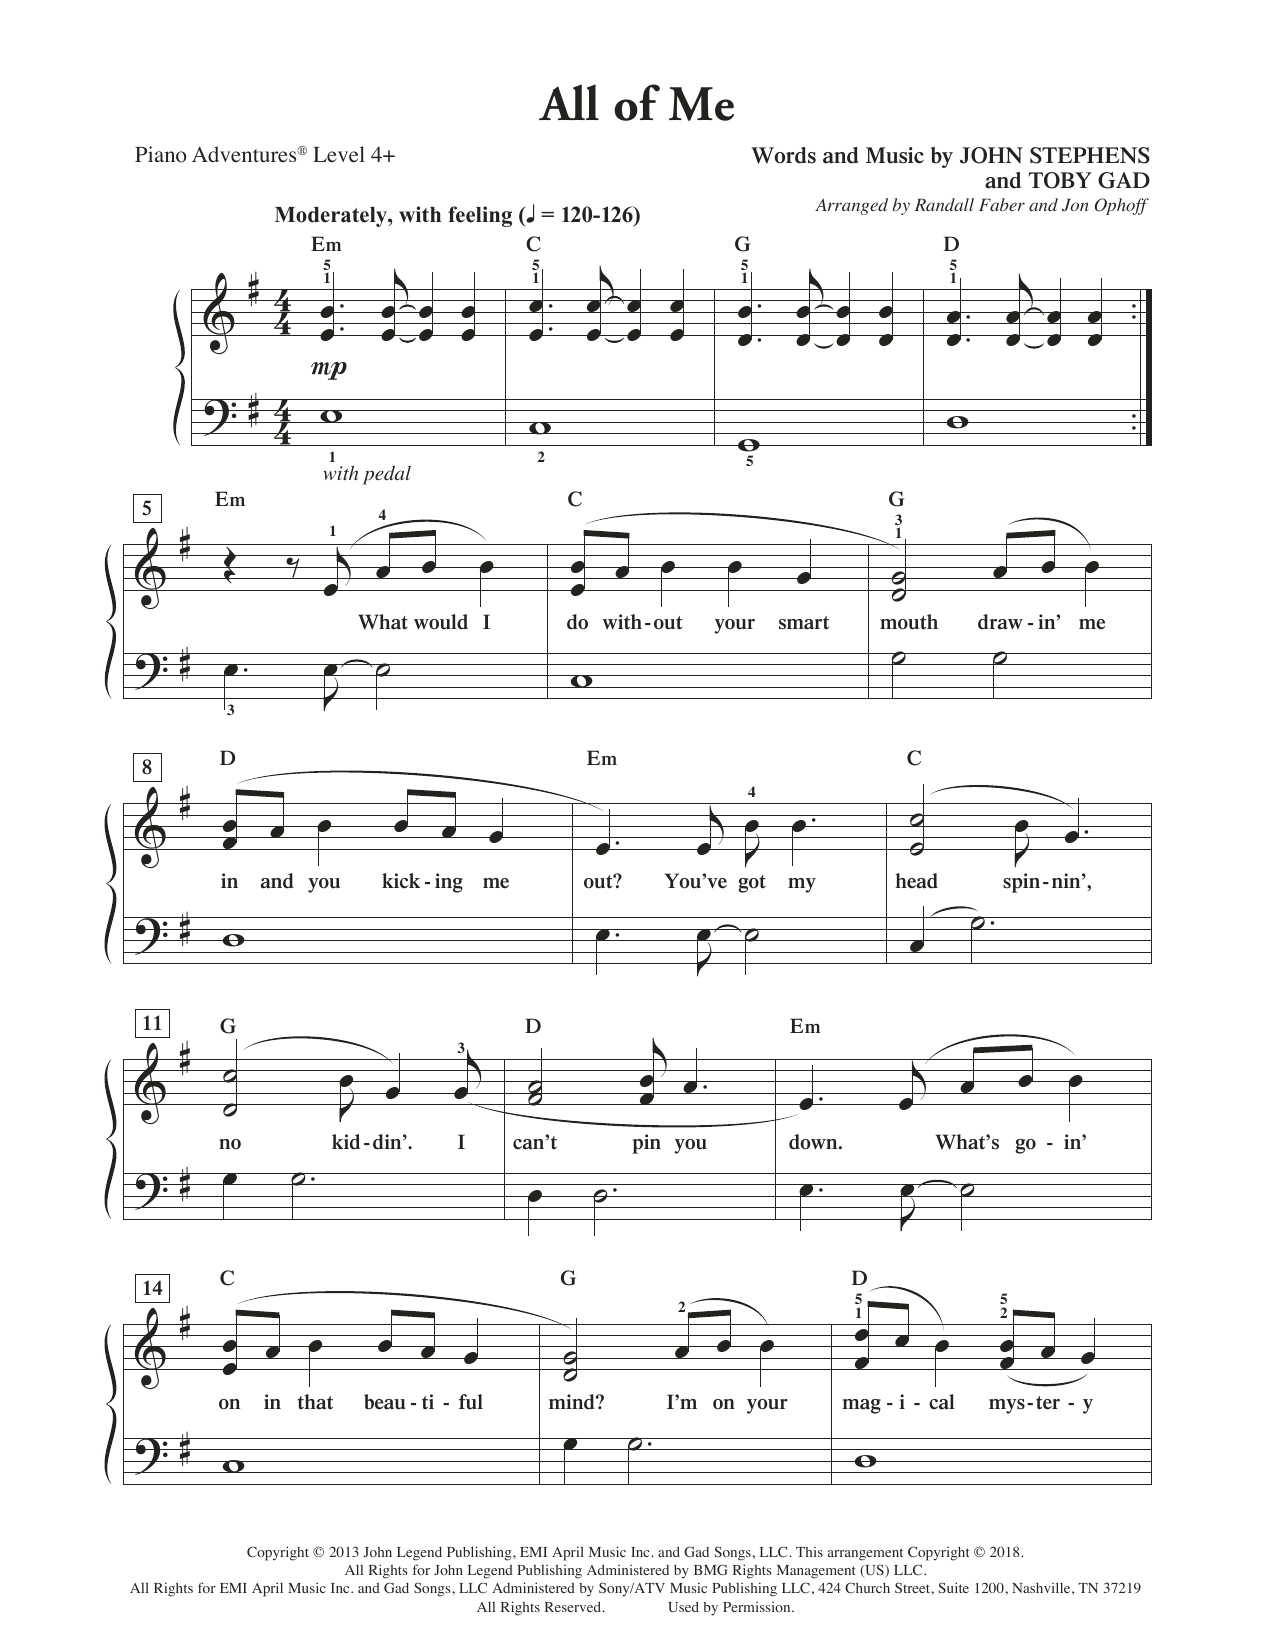 All Of Me Piano Sheet Music all of merandall faber & jon ophoff piano adventures digital sheet music